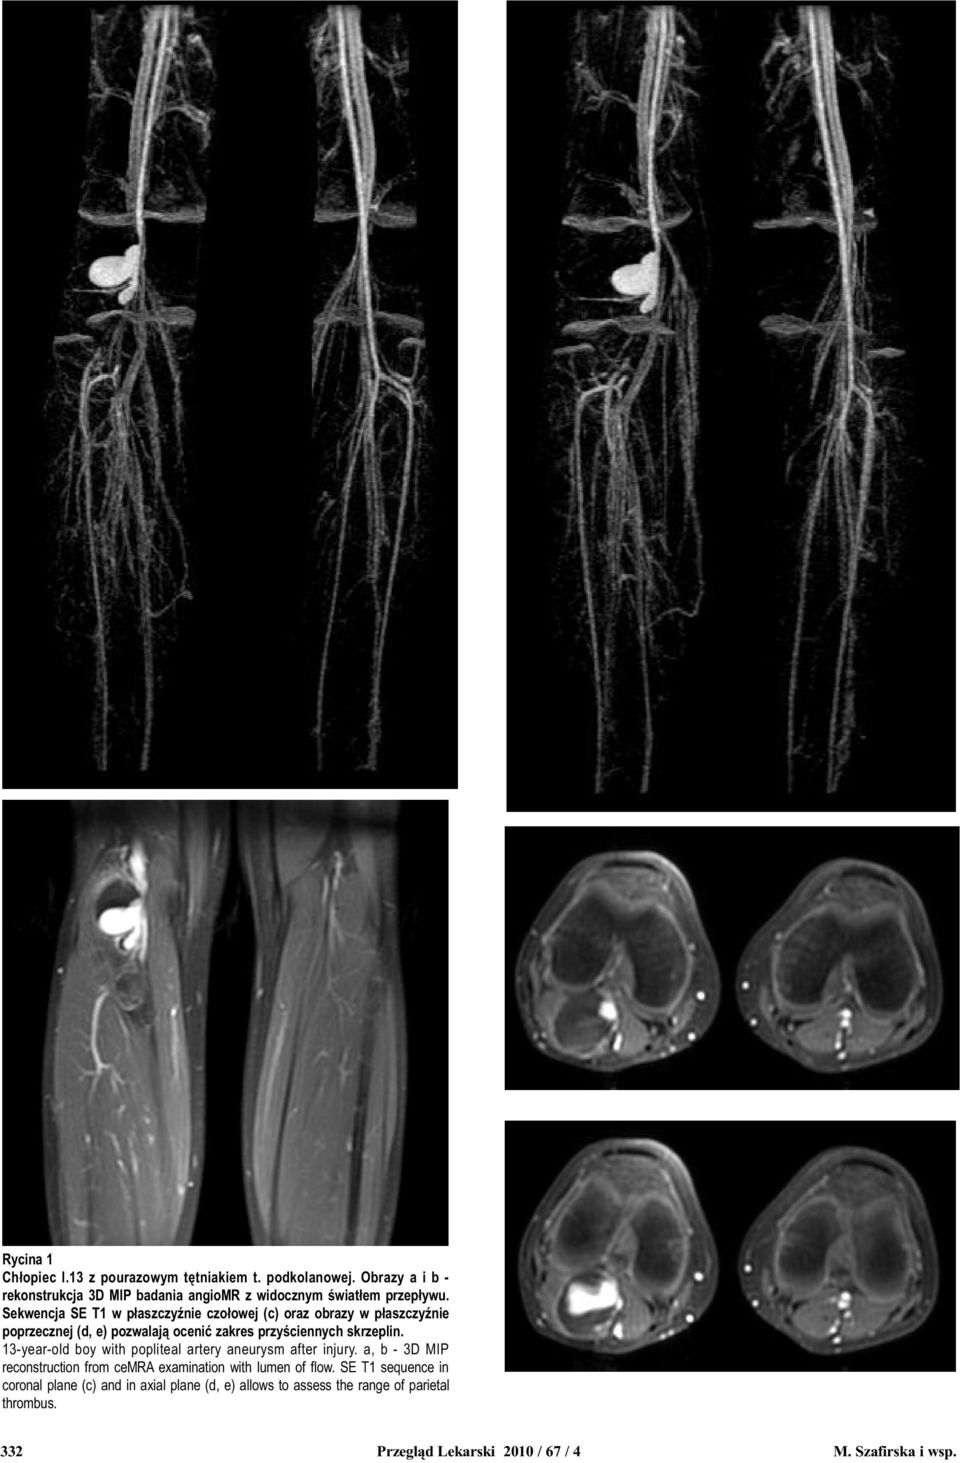 13-year-old boy with popliteal artery aneurysm after injury. a, b - 3D MIP reconstruction from cemra examination with lumen of flow.